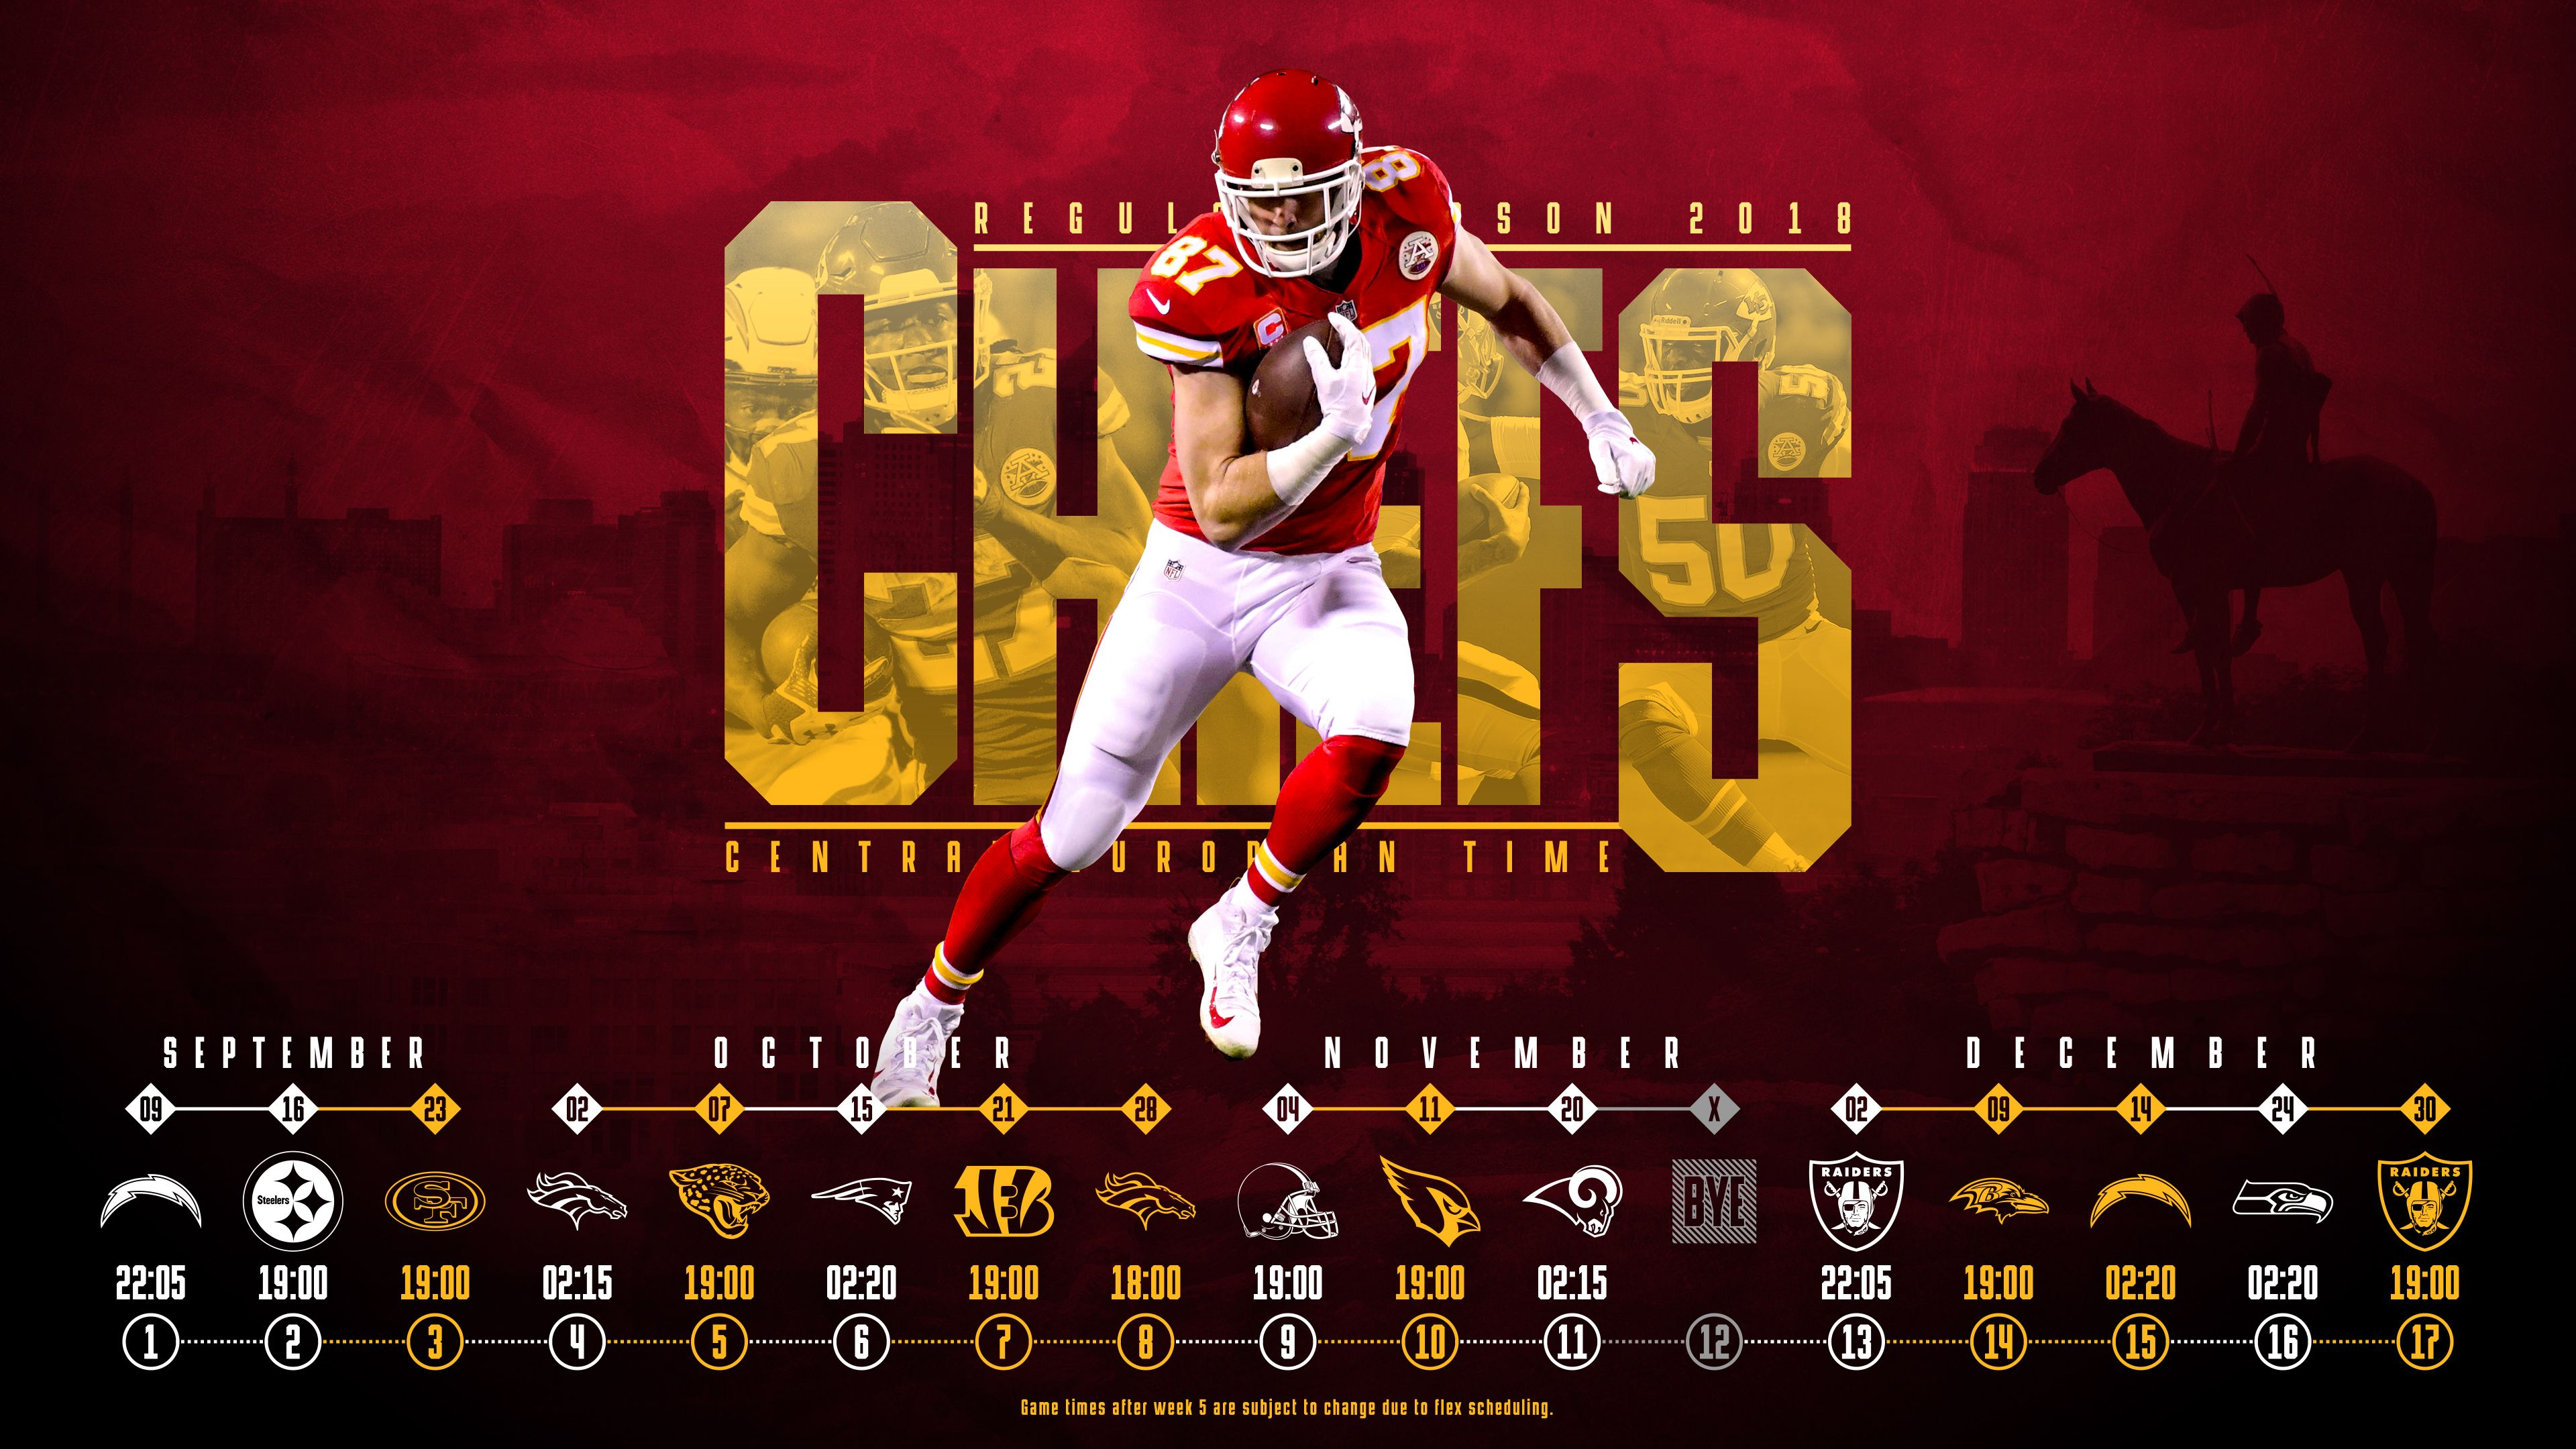 Schedule Wallpaper For The Kansas City Chiefs Regular Season 2018 Central European Time Made By Tobler Gergo Tgers Kansas City Chiefs Nfl Football Kc Chiefs